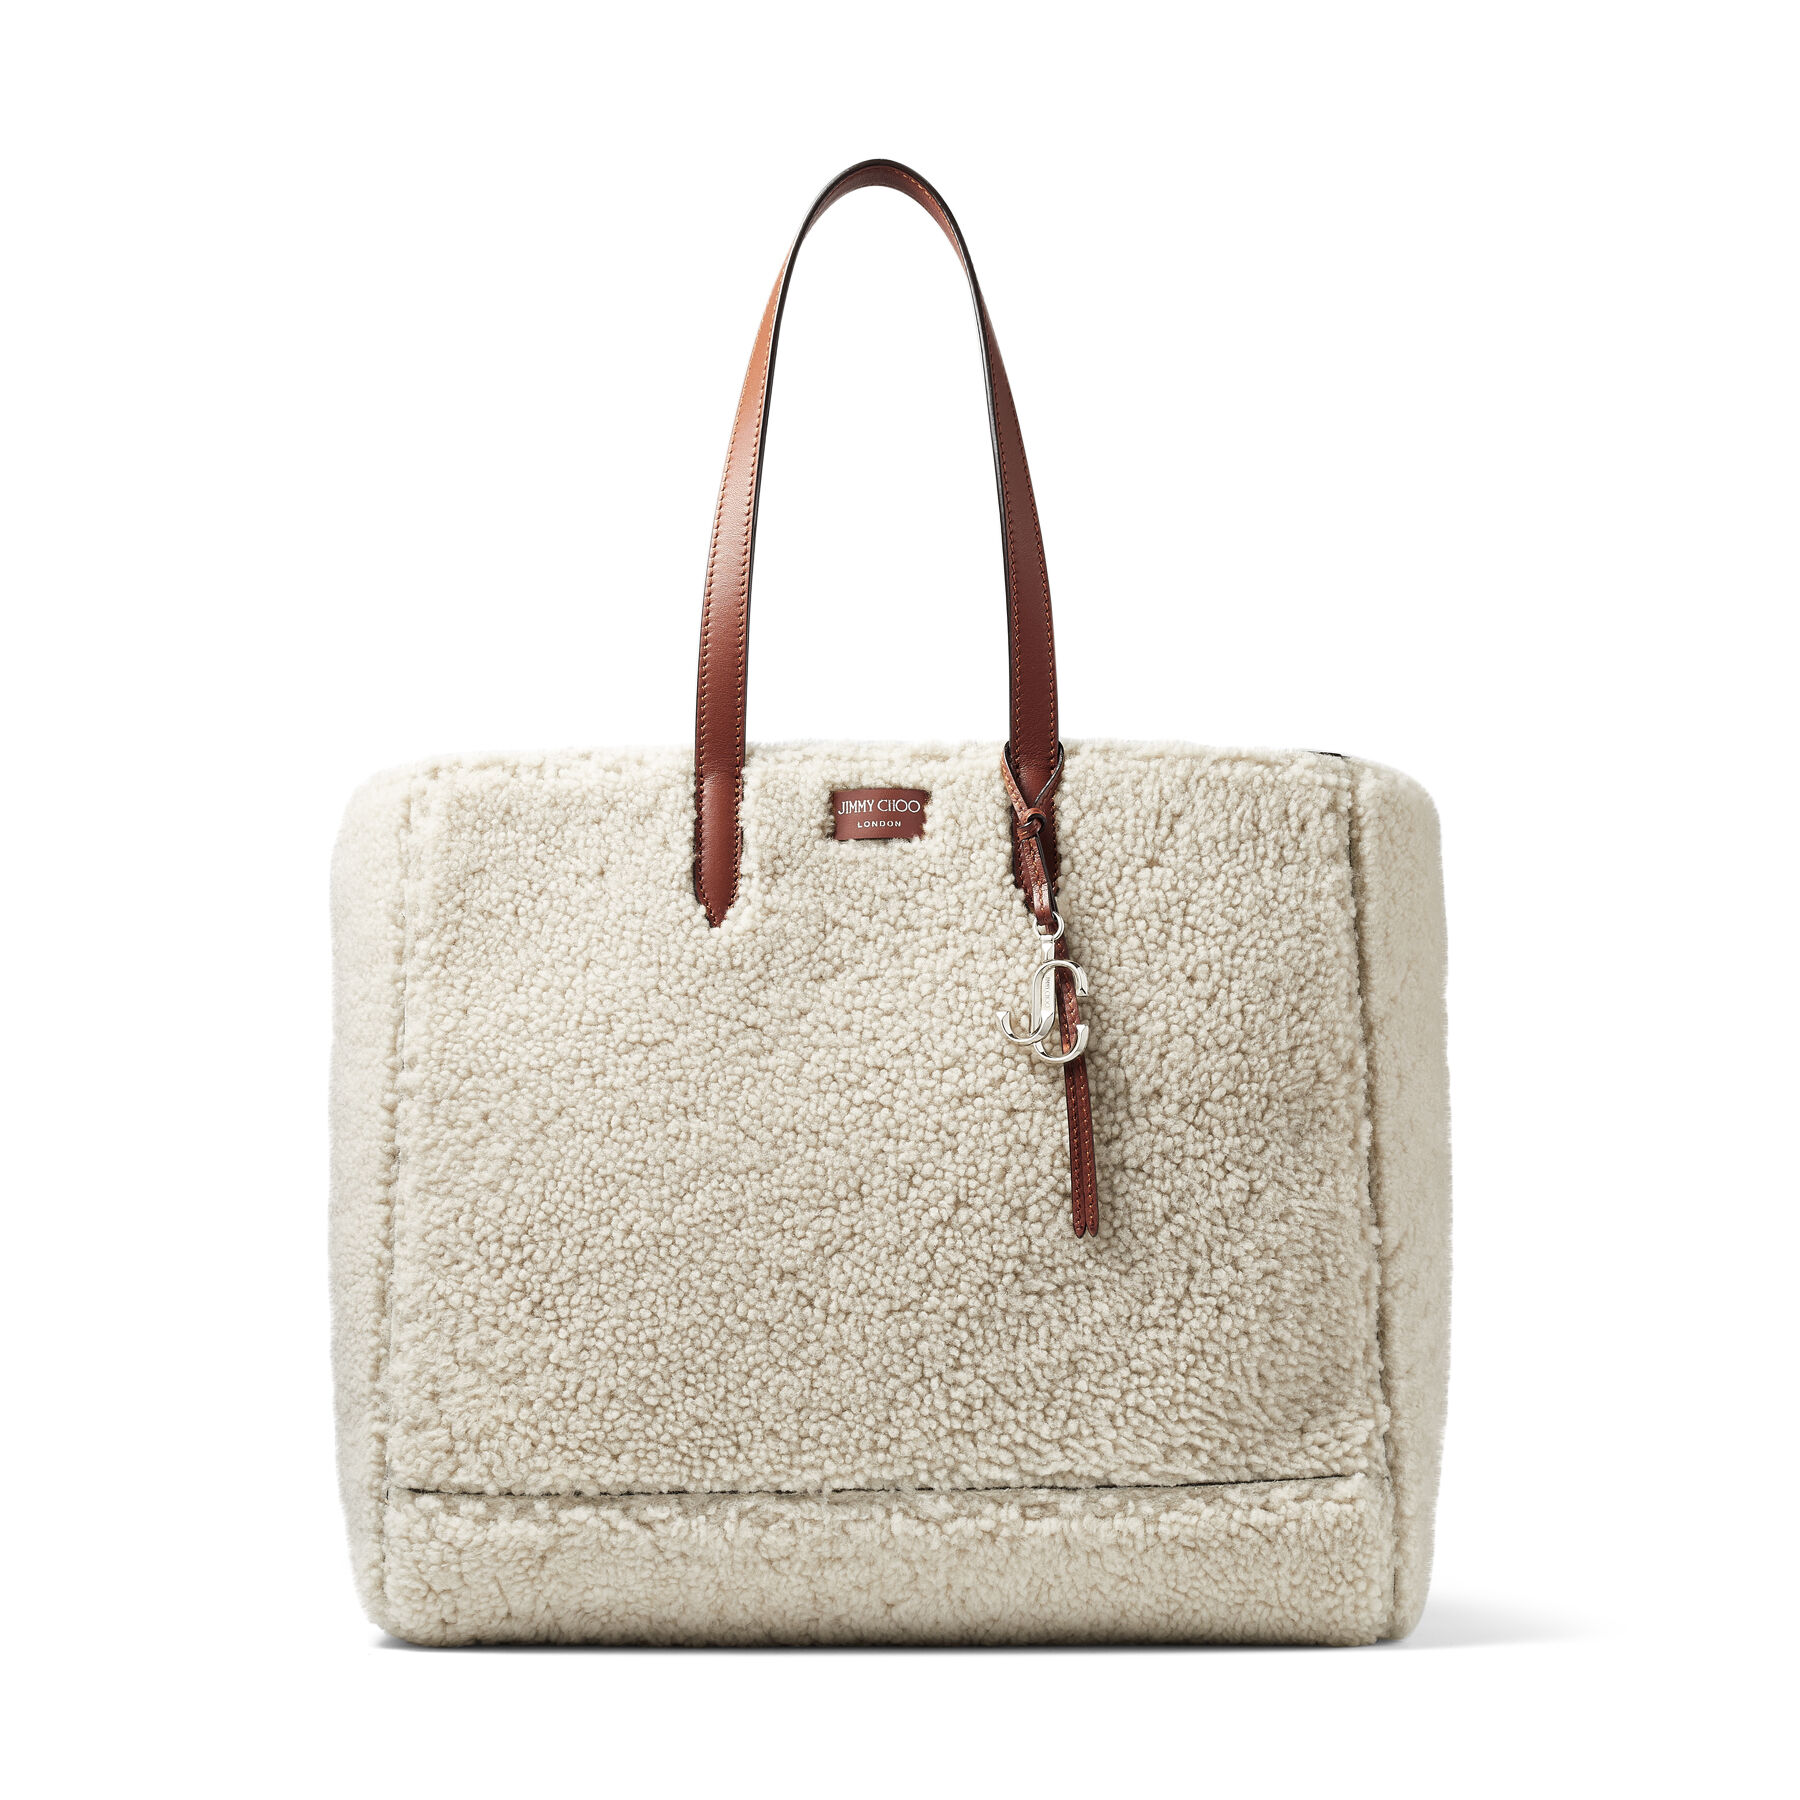 Jimmy Choo LAYLIN TOTE - image 7 of 7 in carousel